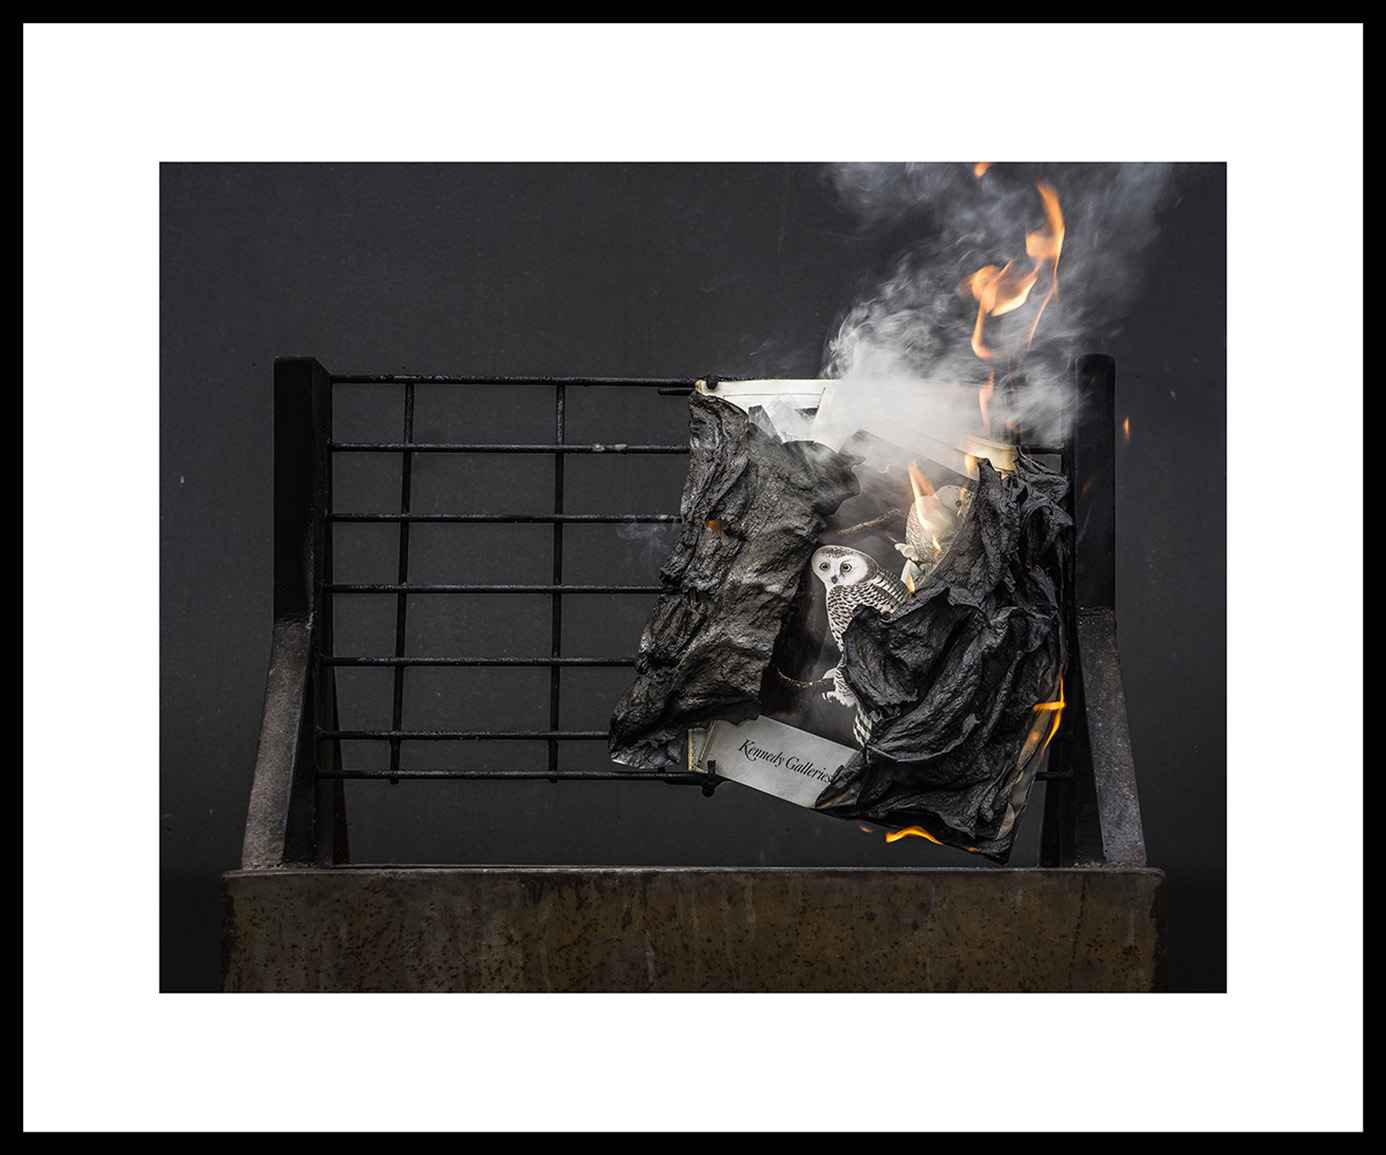 BWGPS_Gregory Perkel_Savonarola Suitr_AiA Oct 1983 #1003F, 2019_Archival ink jet print on Epson exhibition fiber paper_Framed_Edition 5_2AP_�3,000_Courtesy of the Artist and Black & White Project Sp.jpg